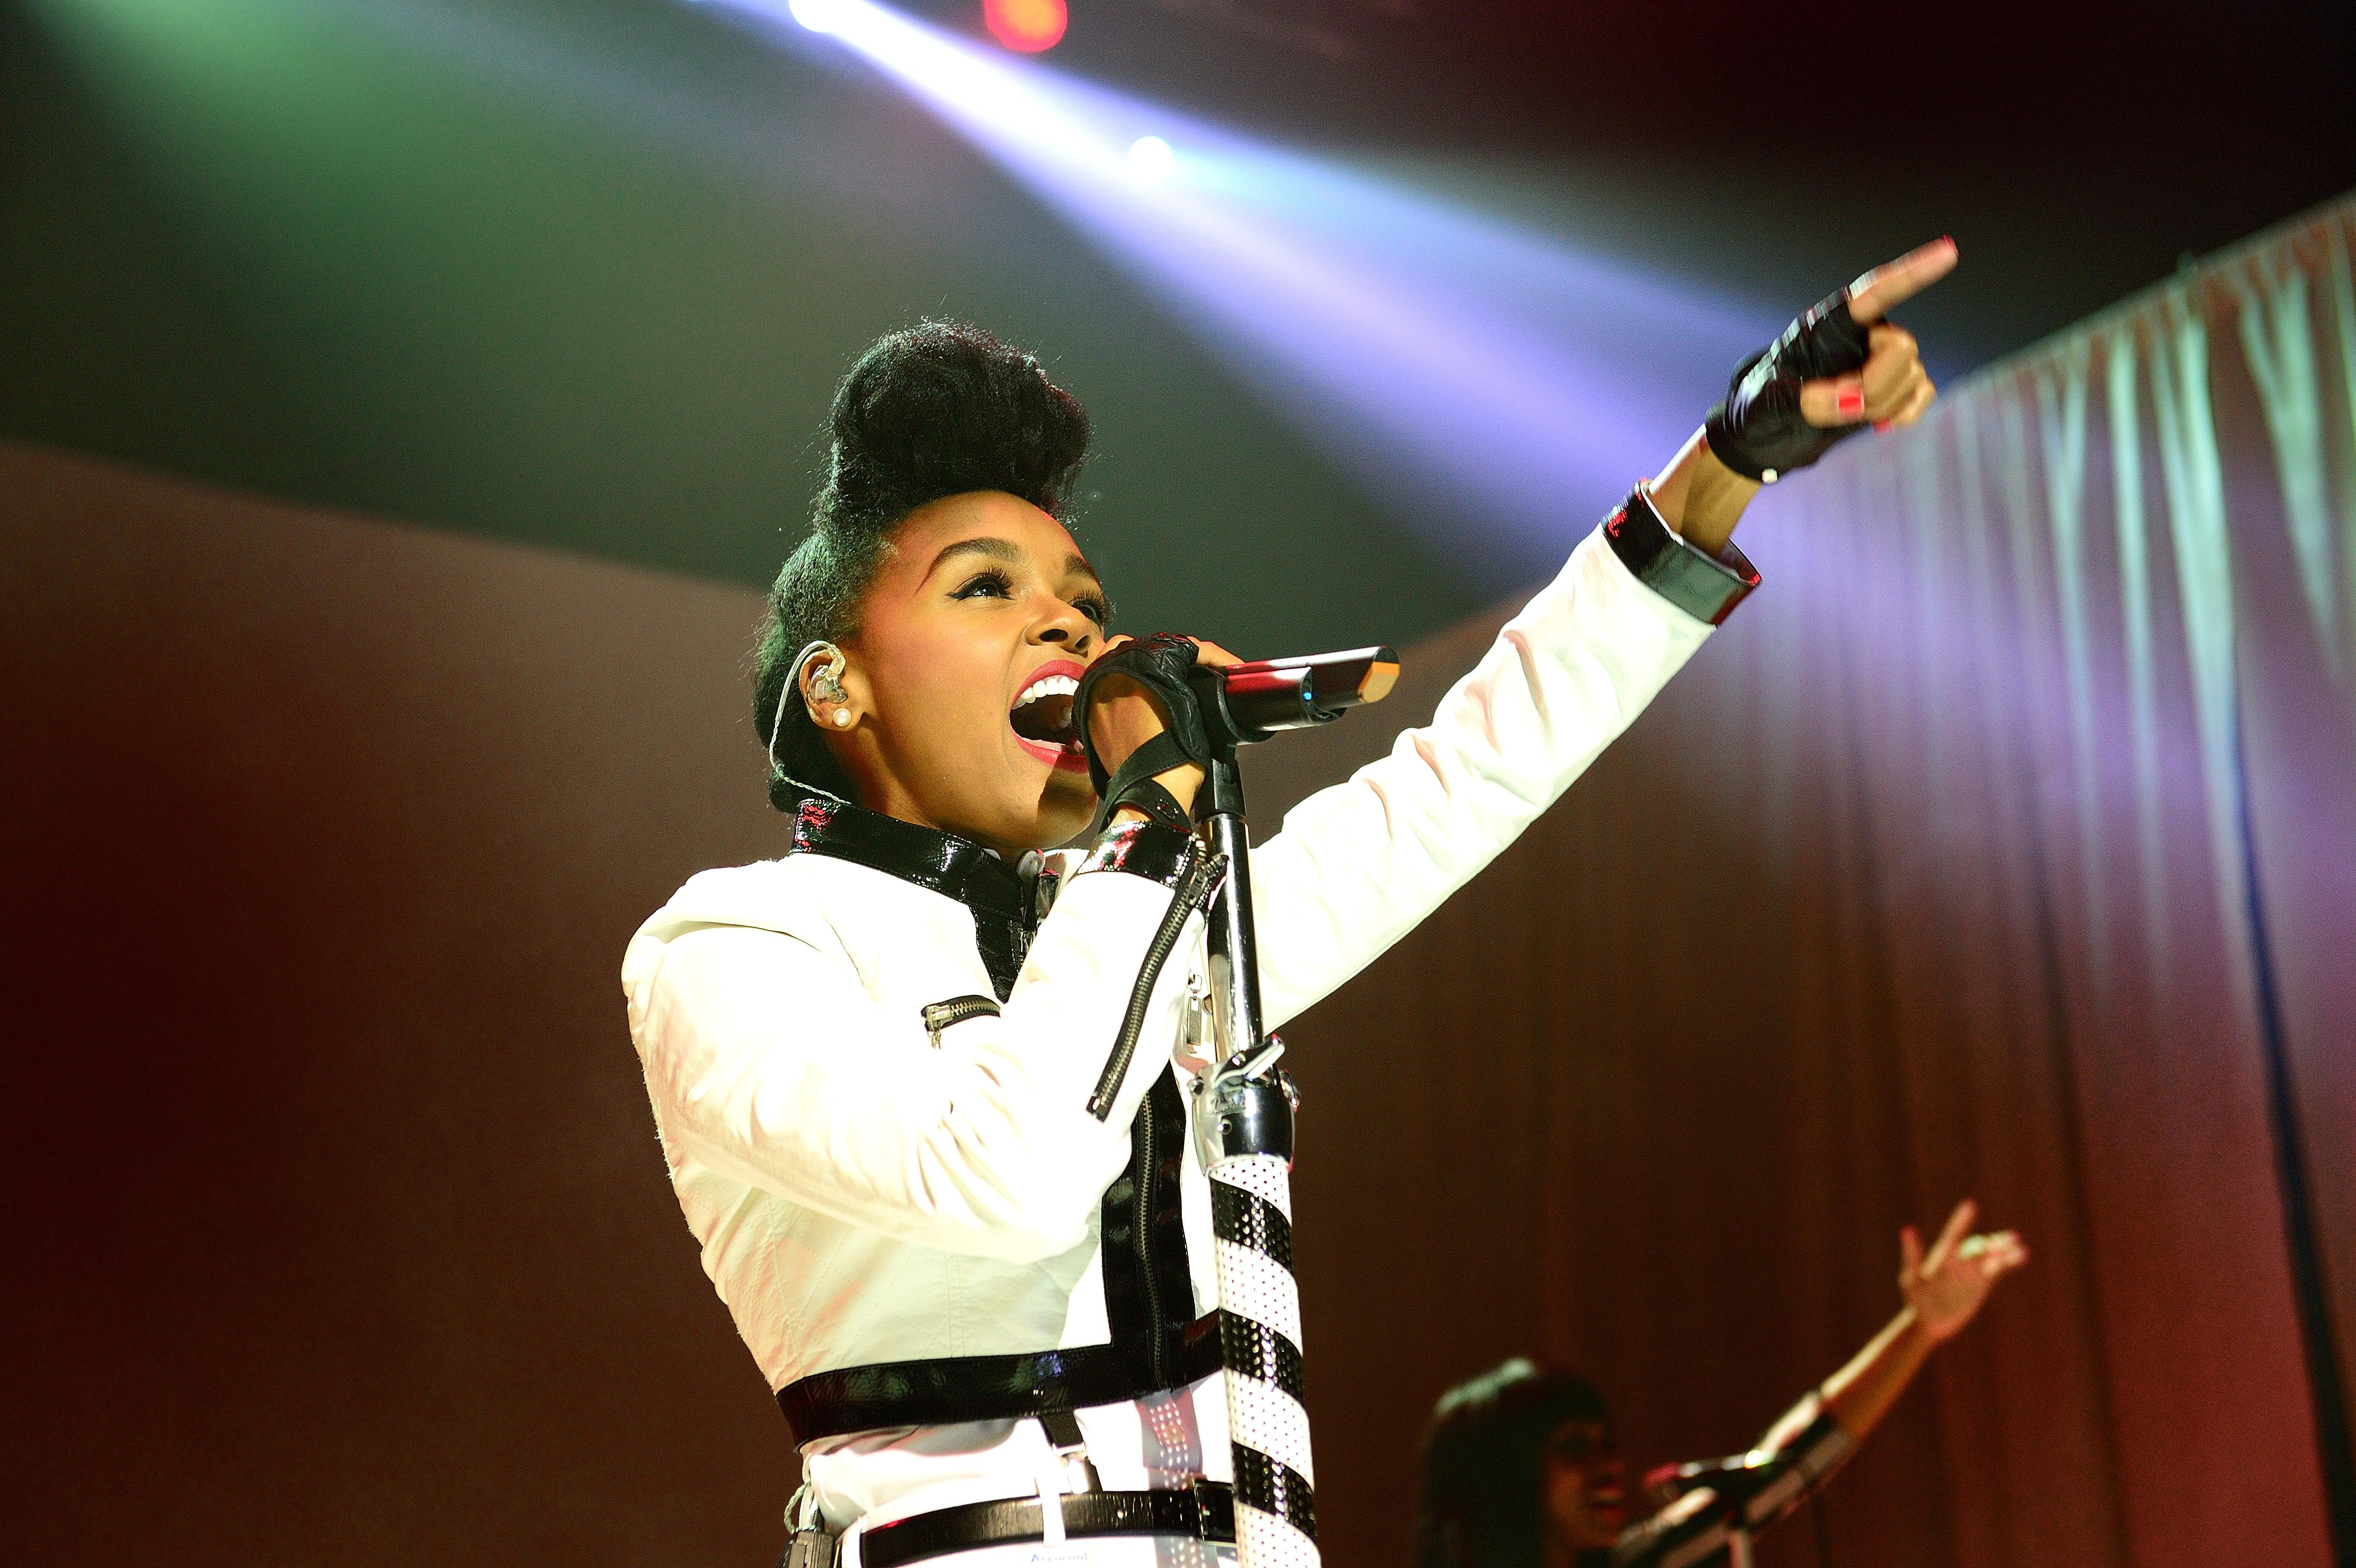 Janelle Monae Performs At Brixton Academy In London